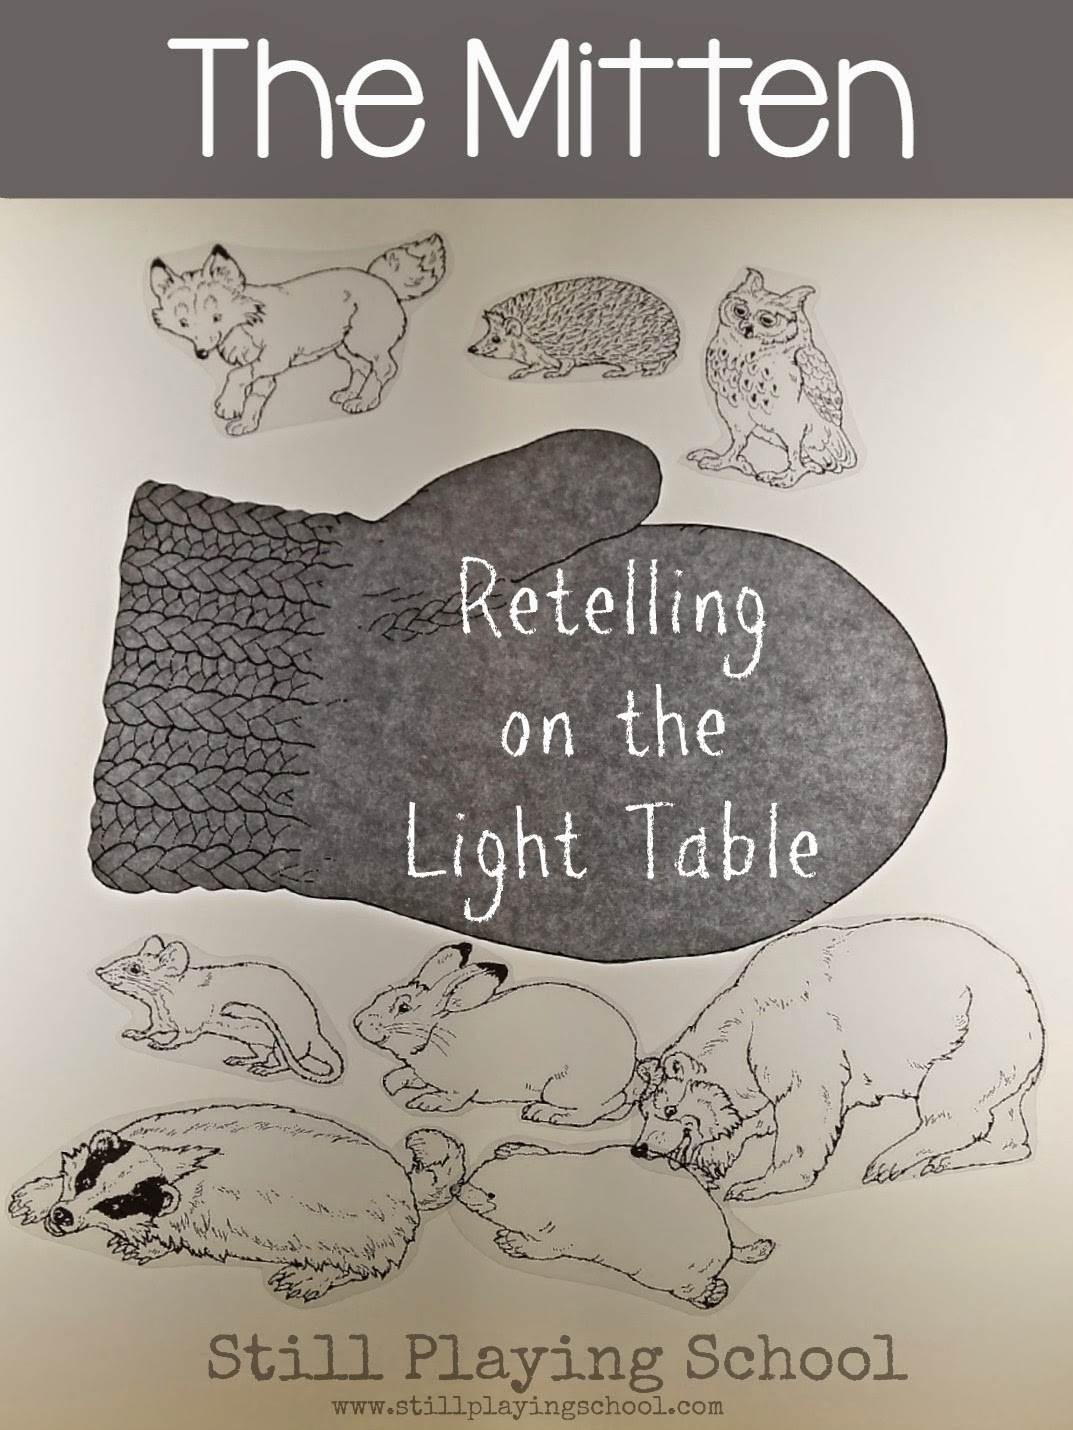 Retelling The Mitten on the Light Table | Still Playing School